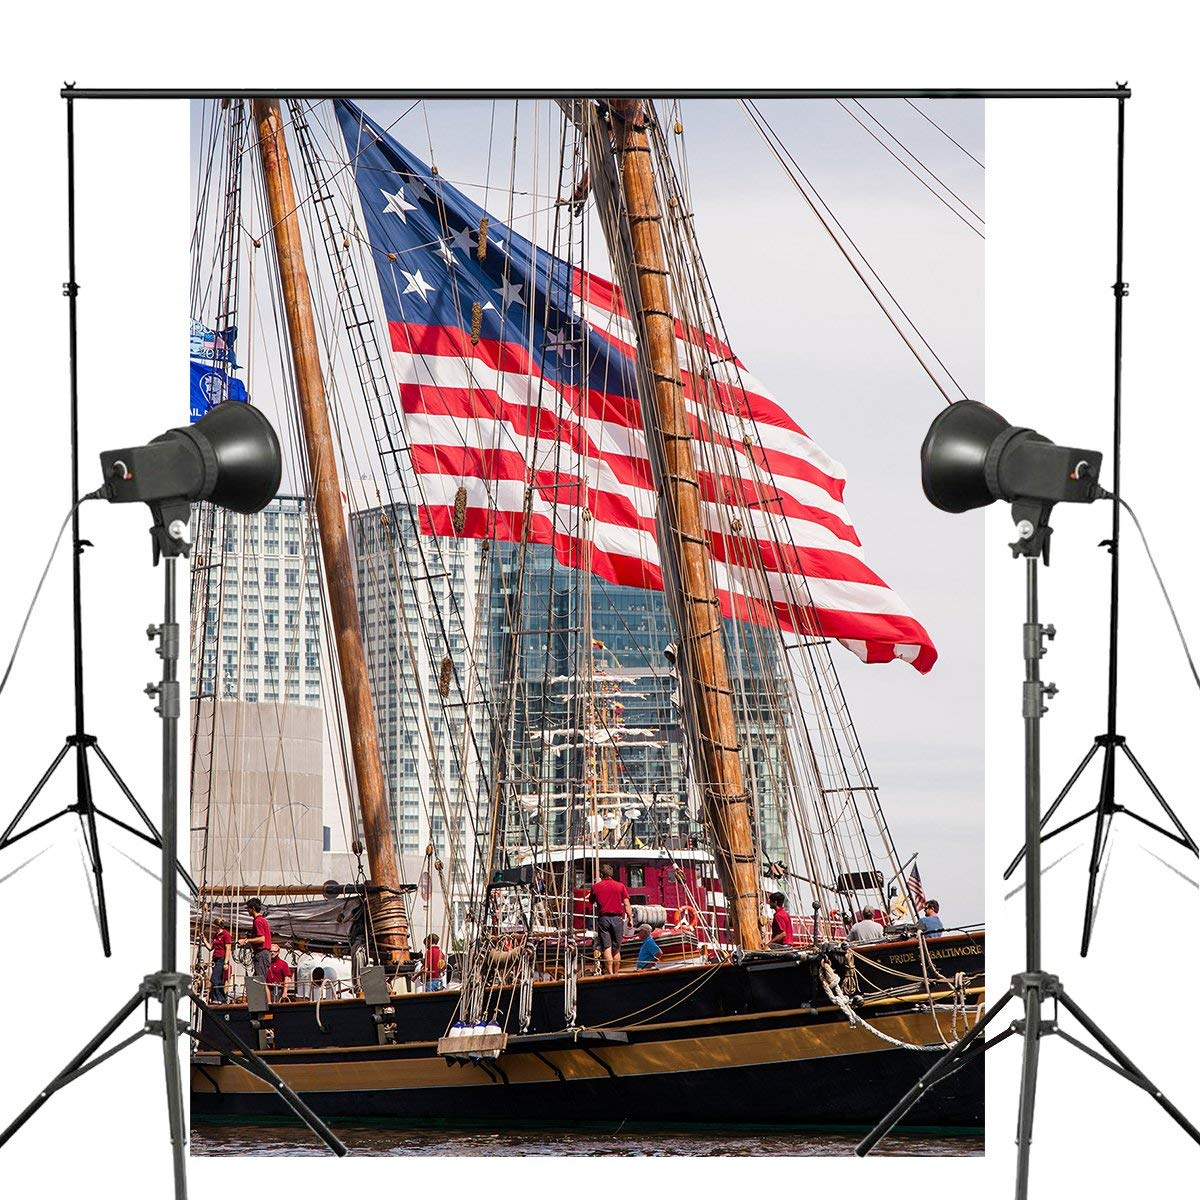 Tall Ships Photography Background Studio Props Wall River water Photography Backdrop 5x7ft-in Photo Studio Accessories from Consumer Electronics